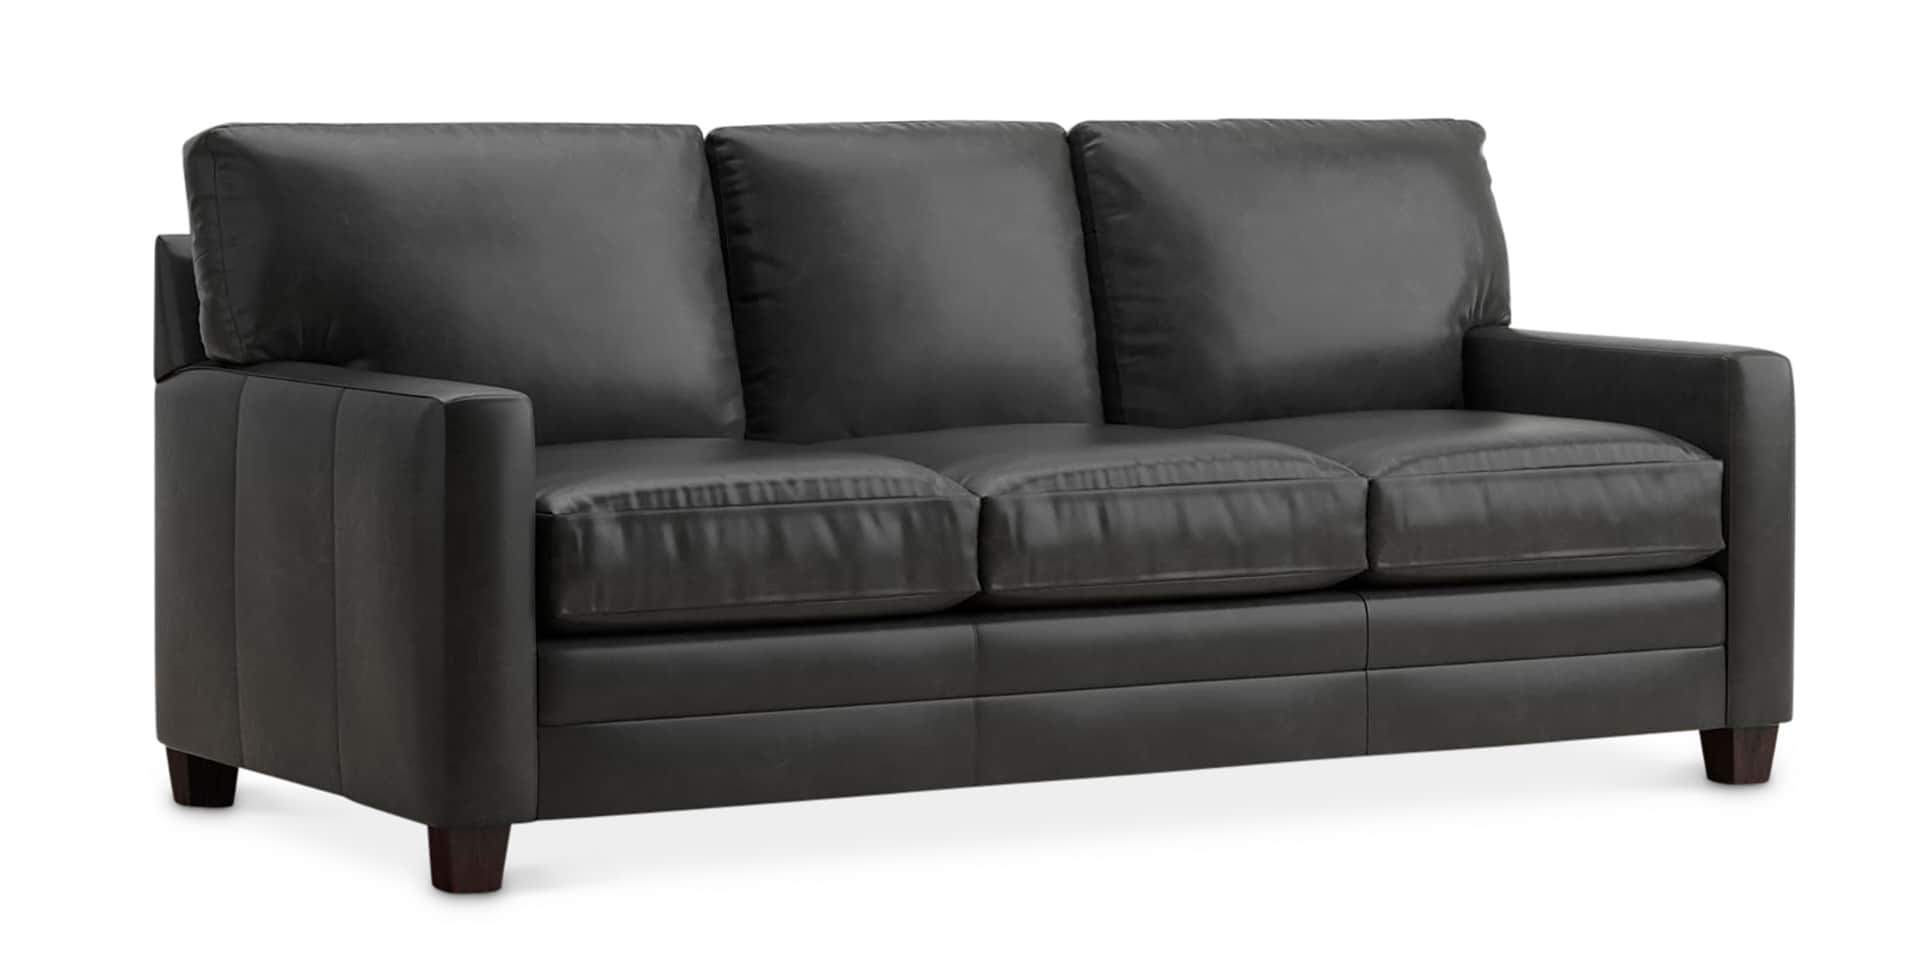 - Ladson Queen Sleeper Sofa In Leather American Casual